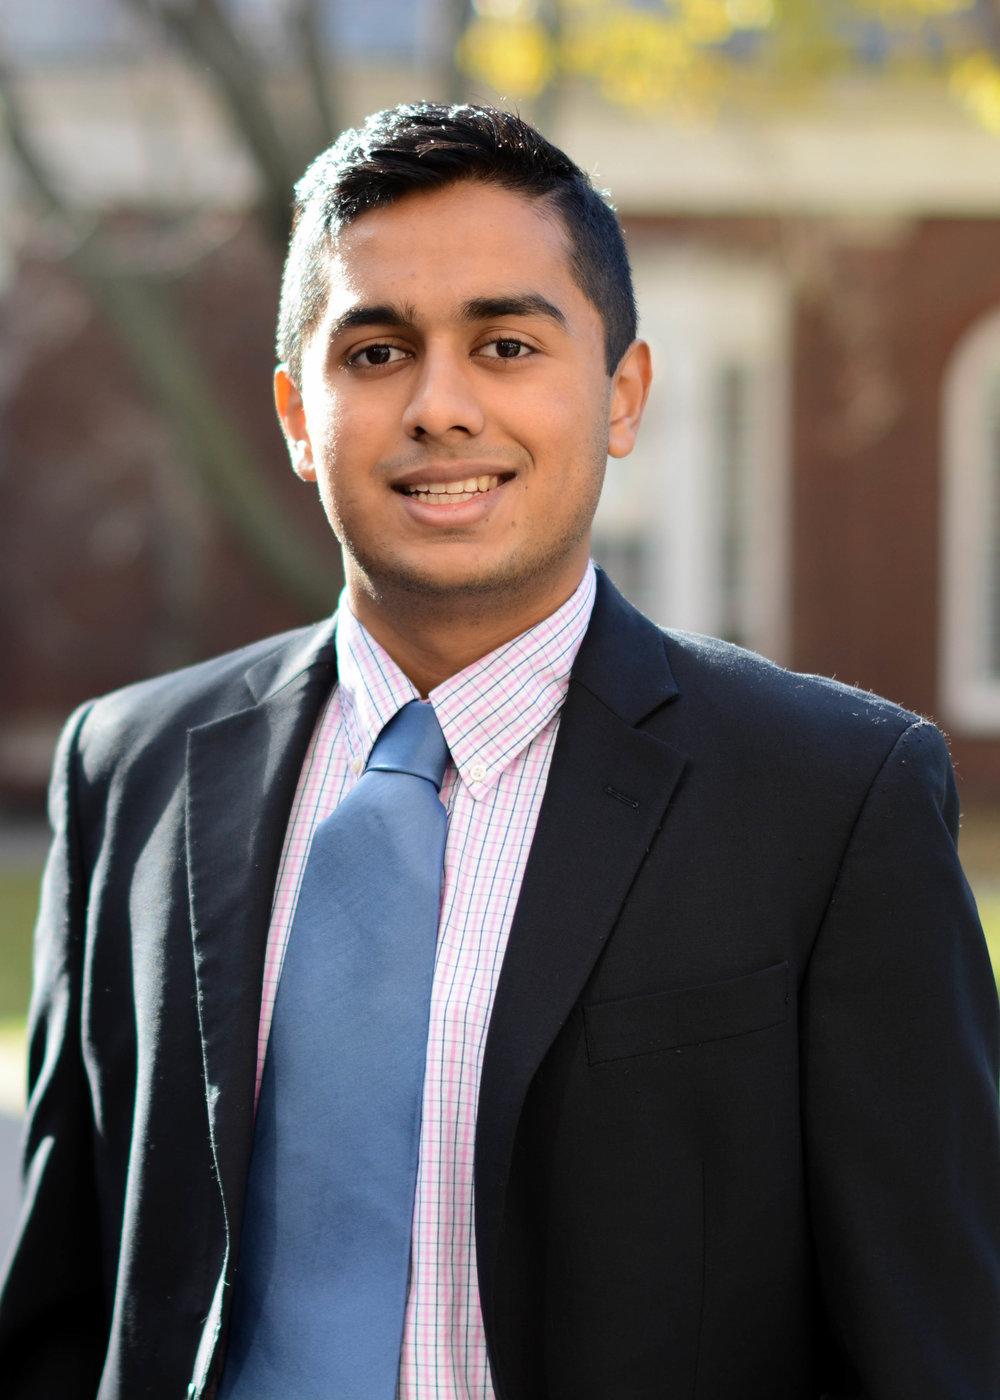 "RAAHUL ACHARYA '20 | MARKETING STRATEGIST - Raahul is a freshman living in Weld, who was born in sunny South India but raised outside of Atlanta, Georgia. He is considering concentrating in Economics with a secondary in Computer Science. Raahul is what you could call a ""die-hard"" sports fan, and follows his hometown Falcons and Hawks closely. Here at Harvard, he is a member of the competitive club tennis team, with tennis being another one of his athletic pursuits. He is currently a member of the Harvard Financial Analysts Club, South Asian Association, and College Bhangra Team as well. When he isn't inundated by school work or extracurricular activities, Raahul can be found reading or watching classic movies."